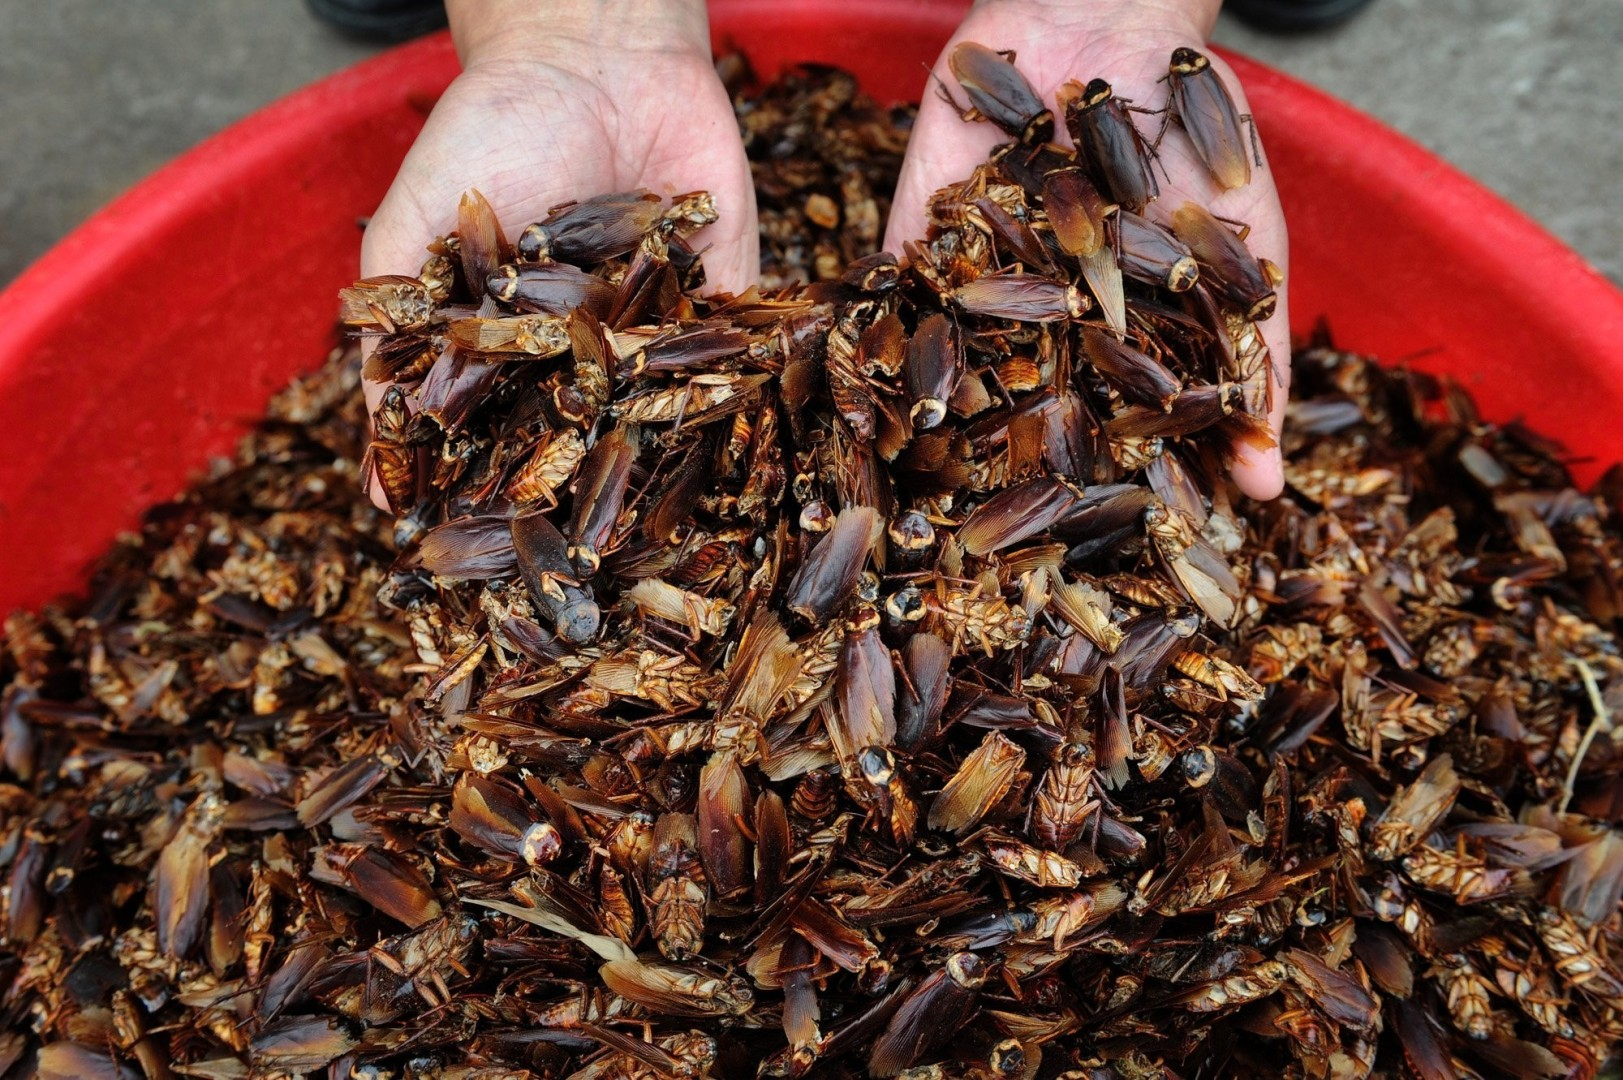 e996c6a451 A giant indoor farm in China is breeding 6 billion cockroaches a year.  Here s why